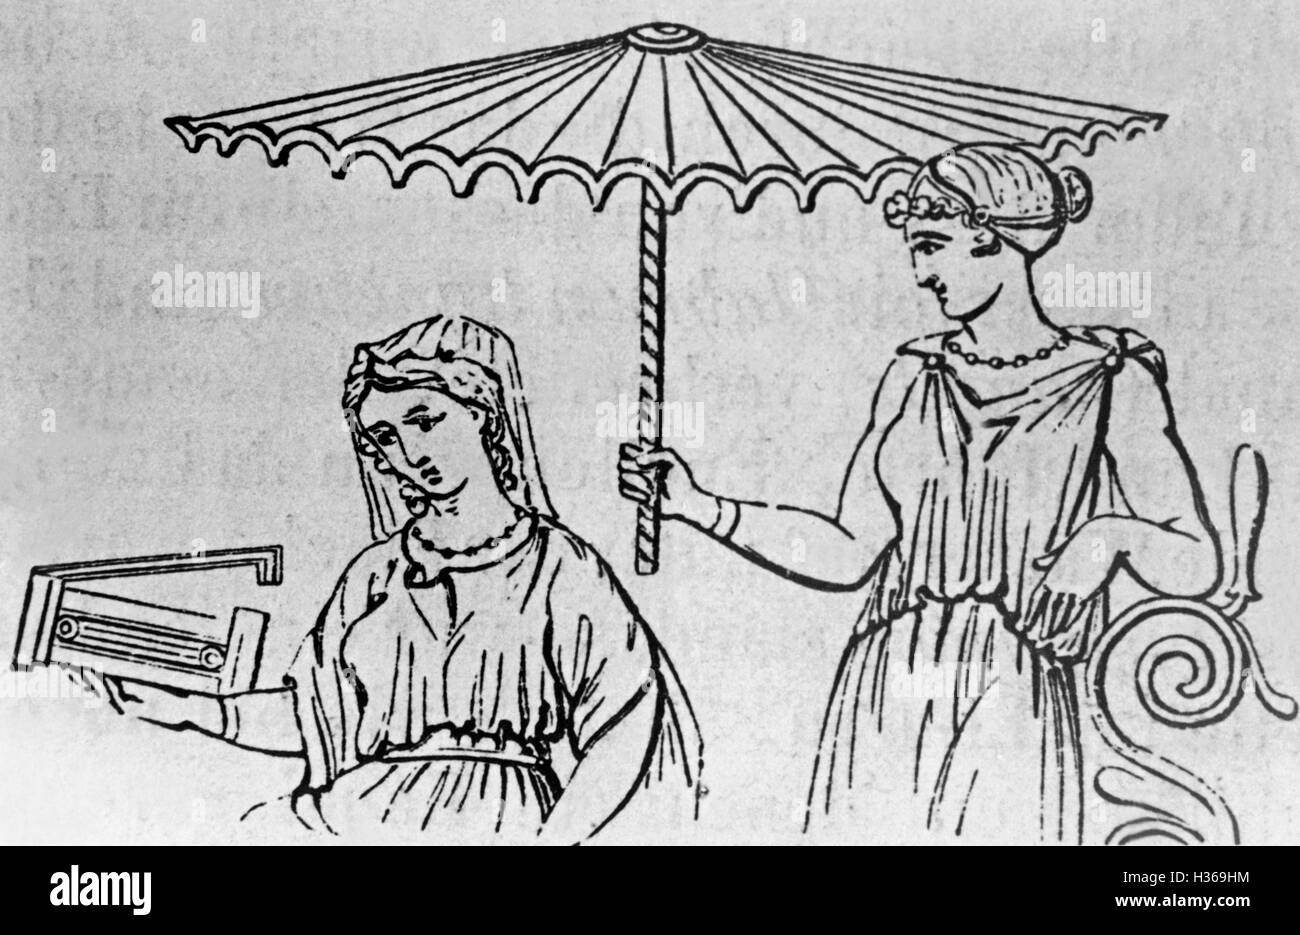 Umbrellas in the ancient times - Stock Image